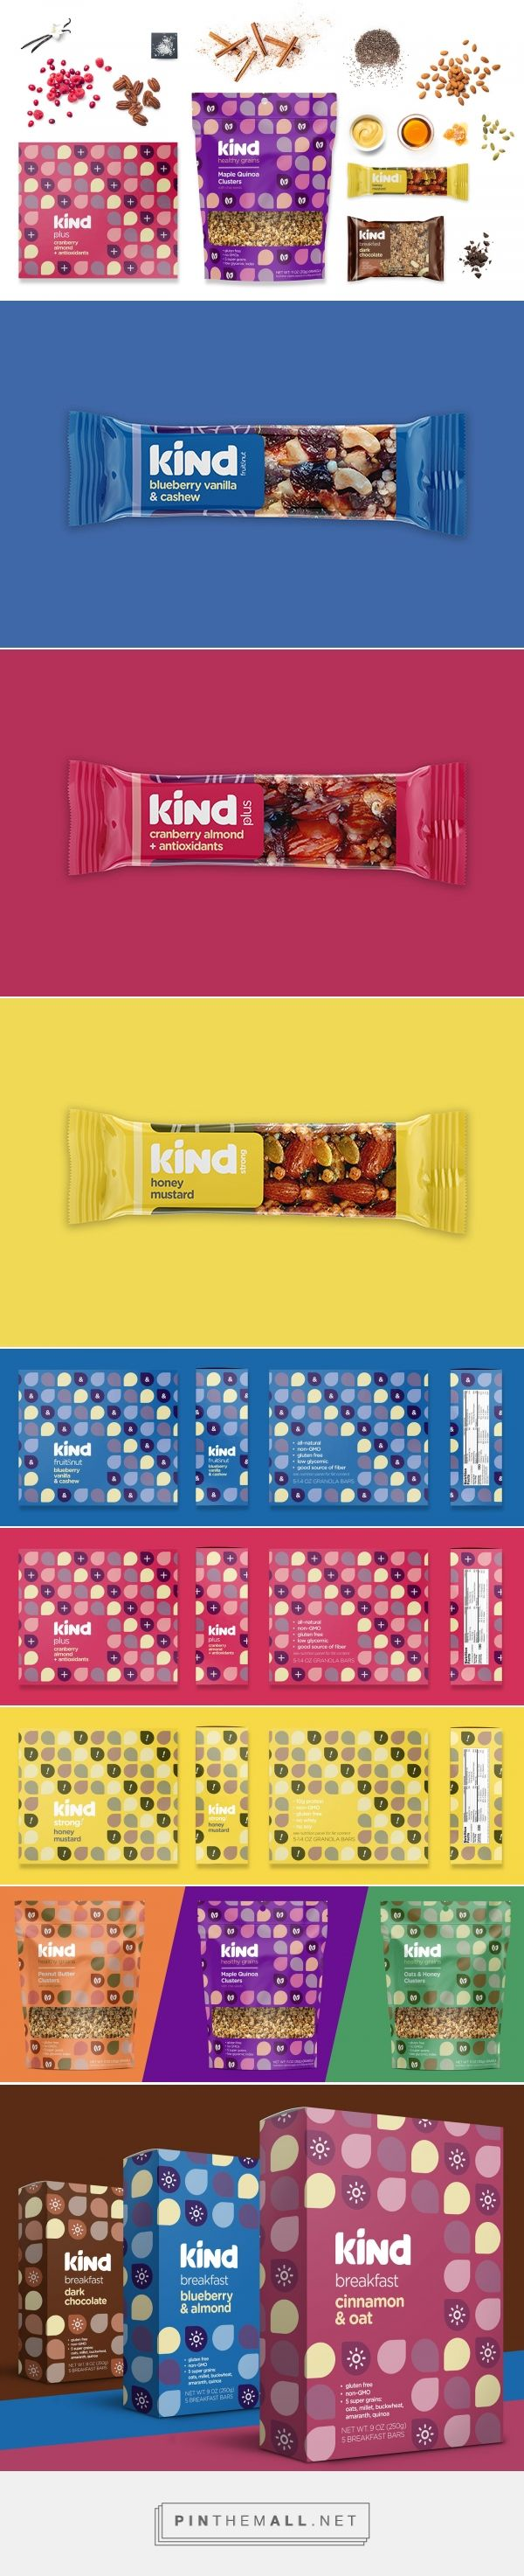 Kind Snacks Rebrand (Student Project) - Packaging of the World - Creative Package Design Gallery - http://www.packagingoftheworld.com/2017/09/kind-snacks-rebrand-student-project.html